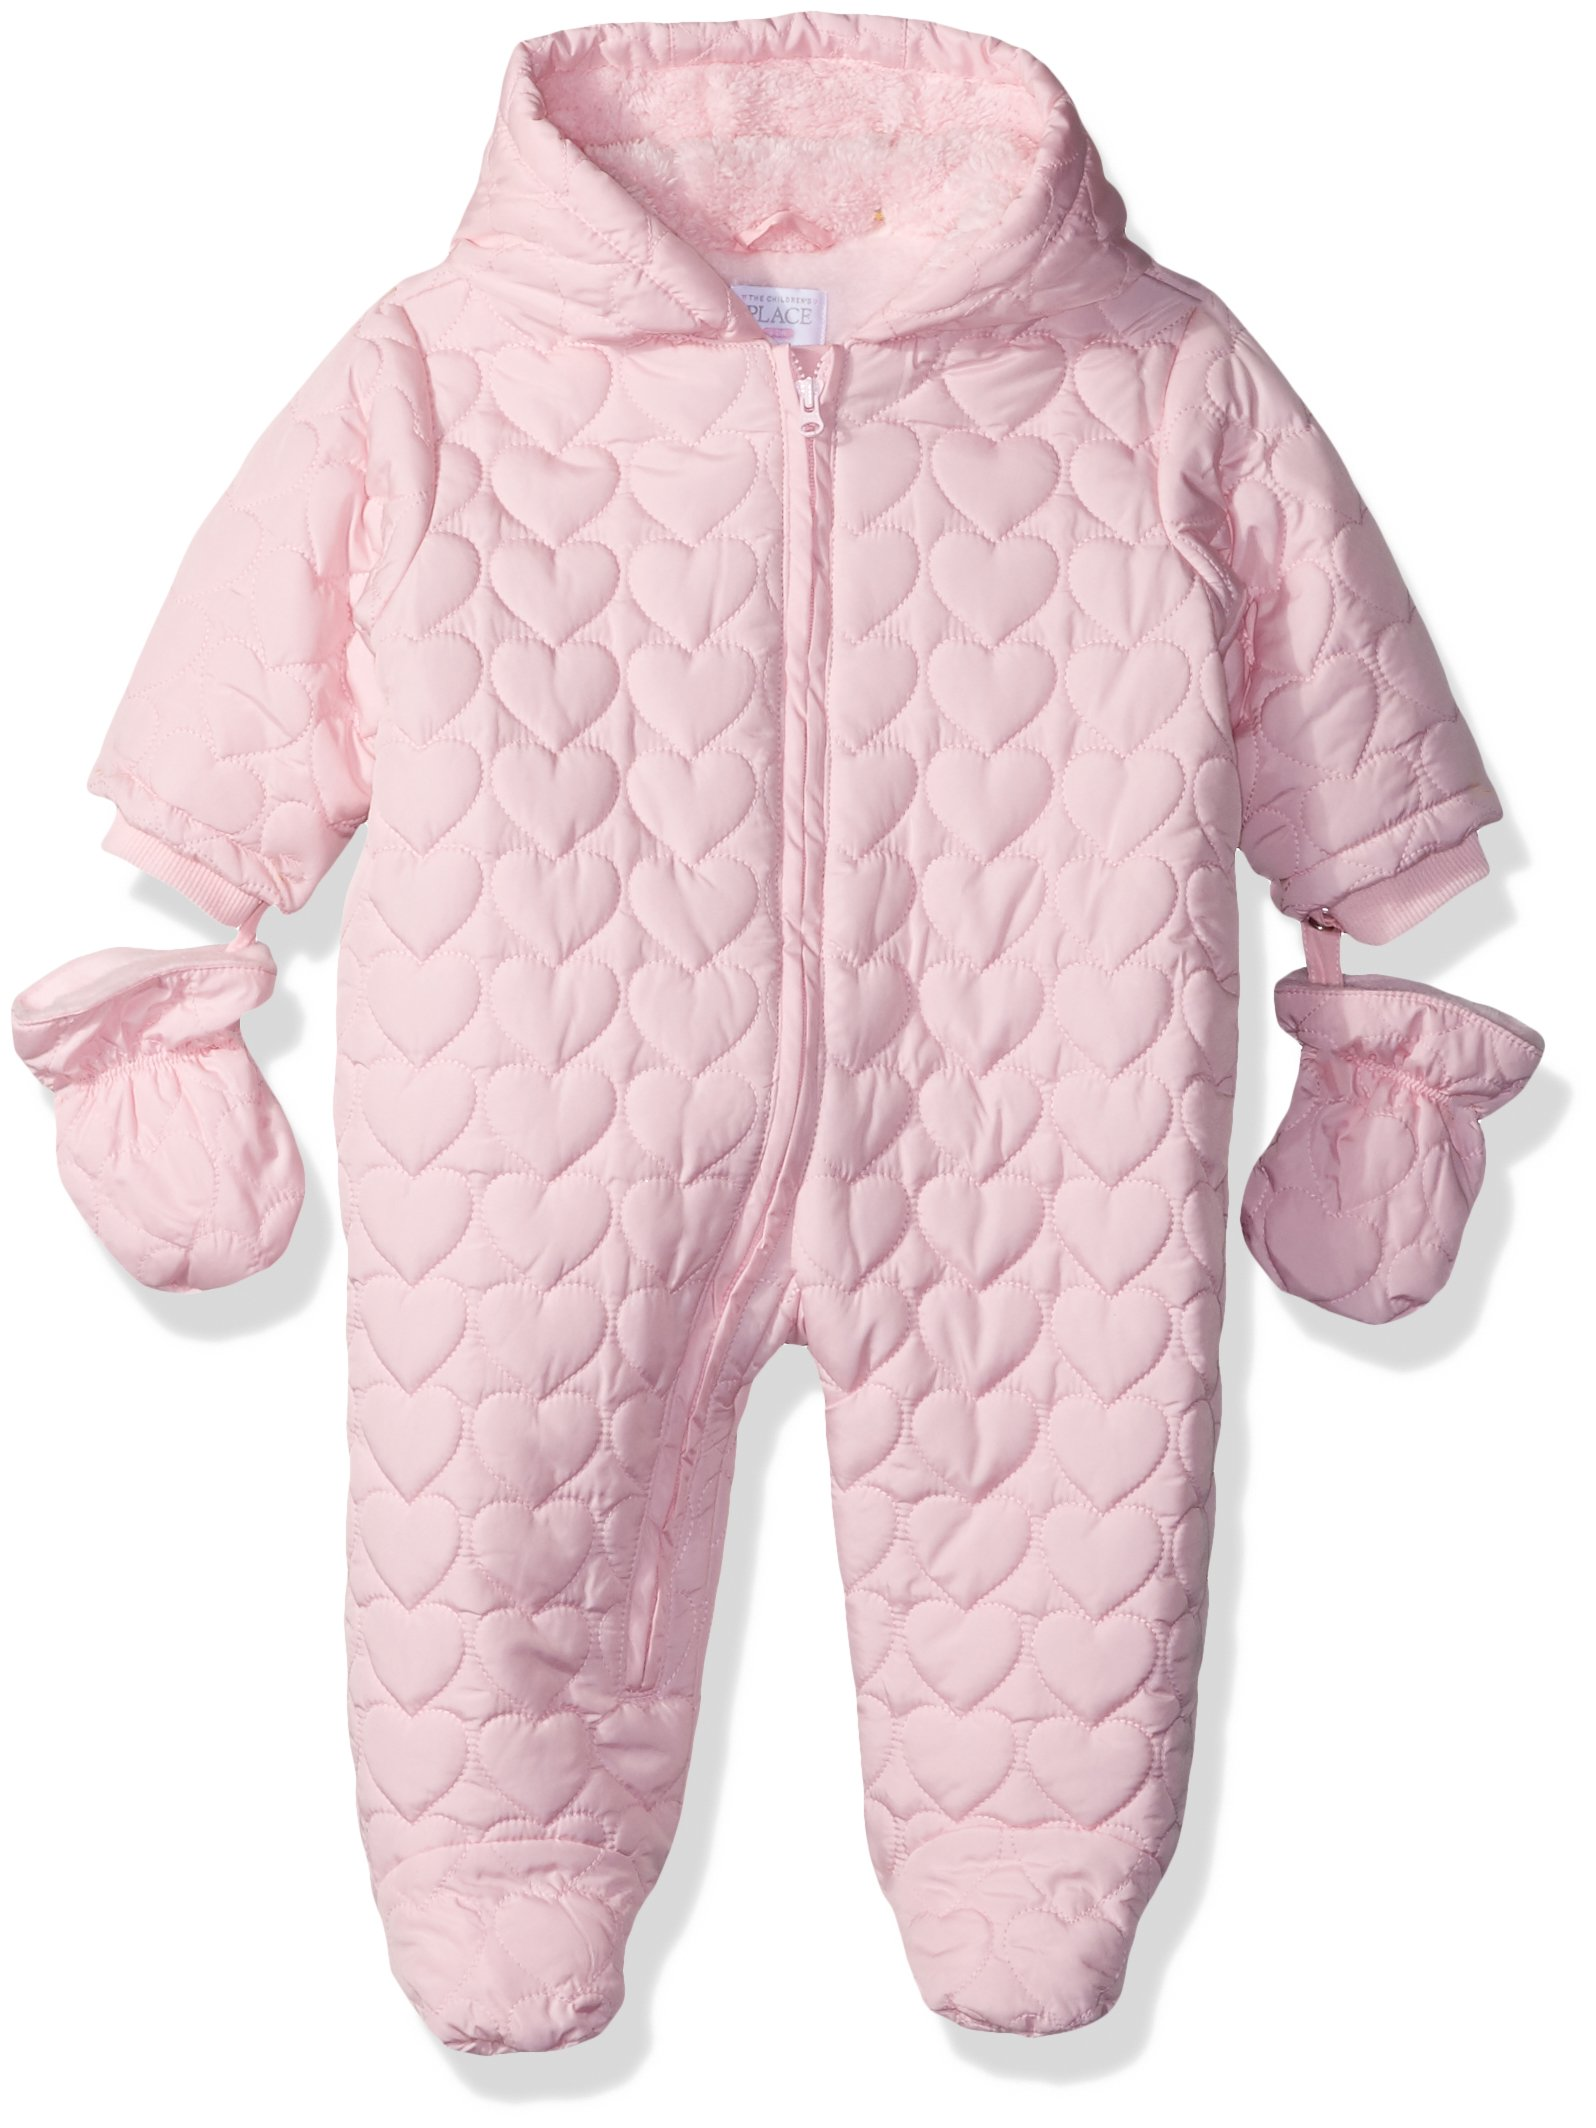 The Children's Place Baby Snowsuit, Shell 85873, 6-9MONTHS by The Children's Place